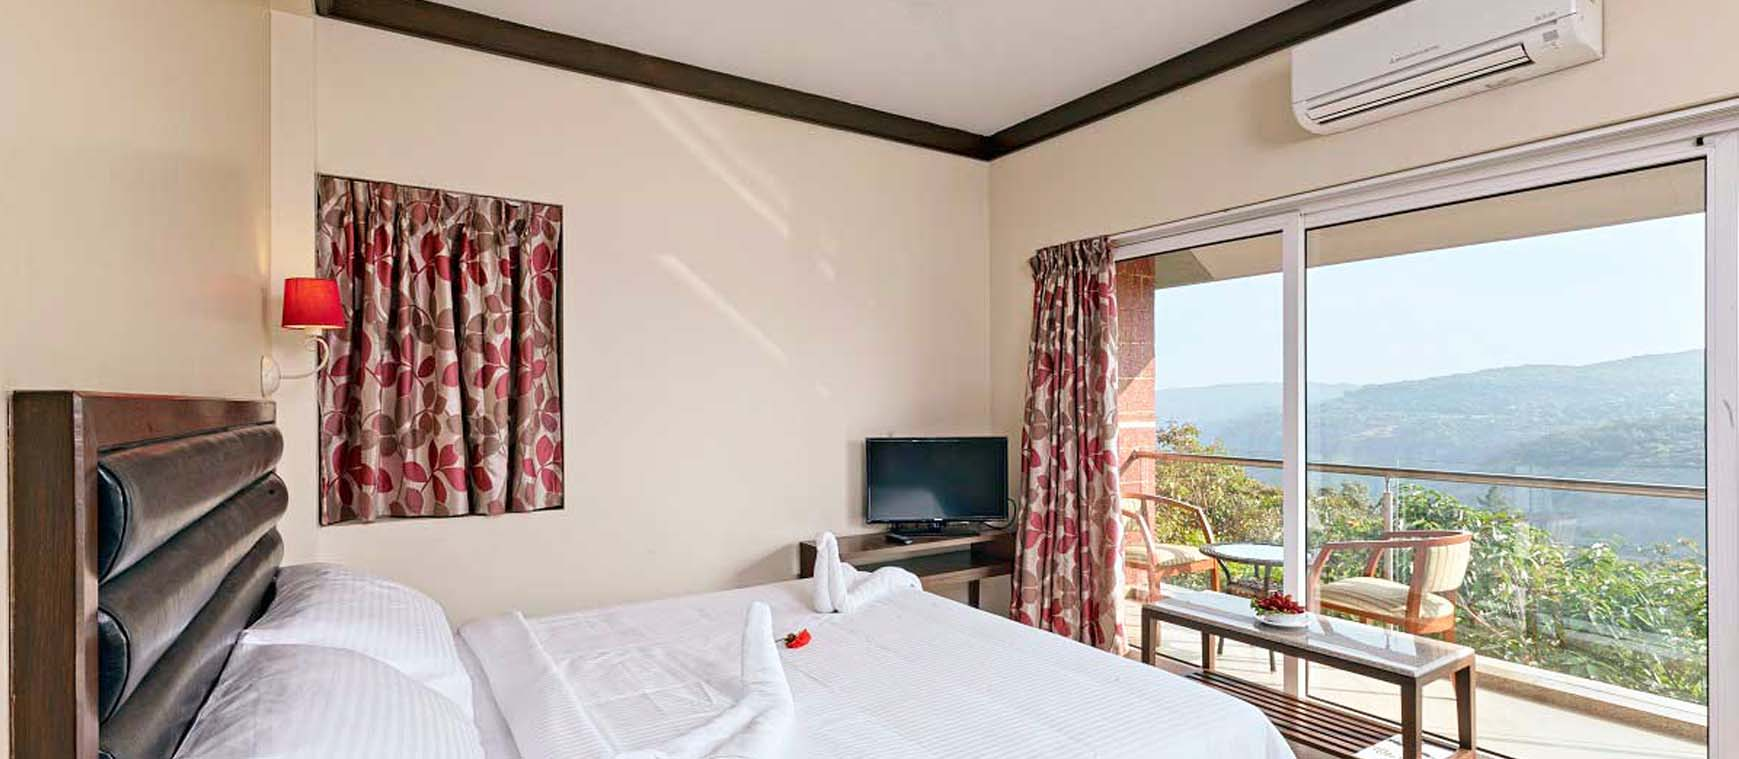 luxury room in mahabaleshwar